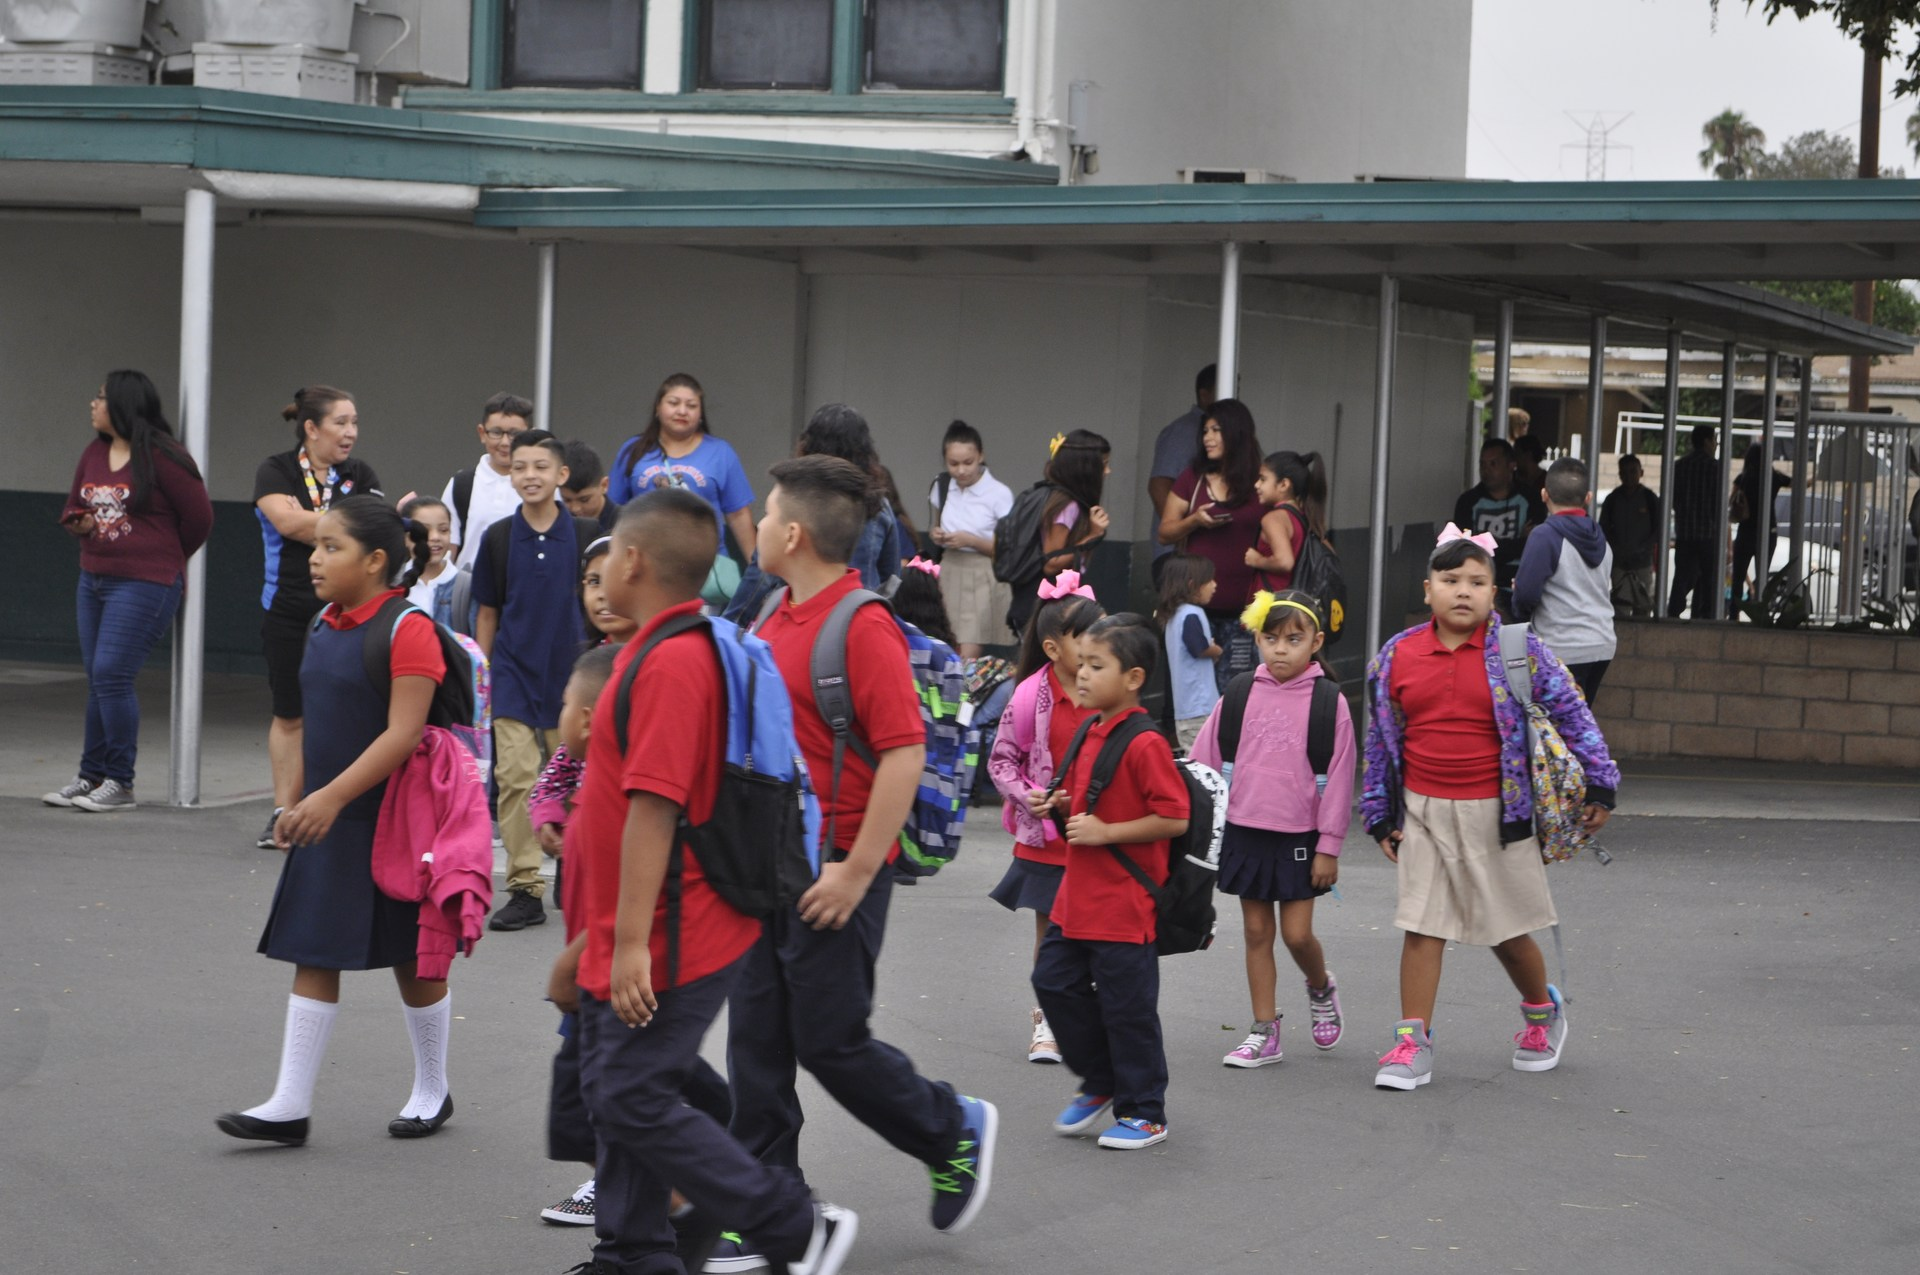 """lwin Elementary, with 392 students in transitional kindergarten through sixth grade, launched the new year Monday with a """"walk and talk"""" before school to energize students and give them a chance to reconnect with friends."""